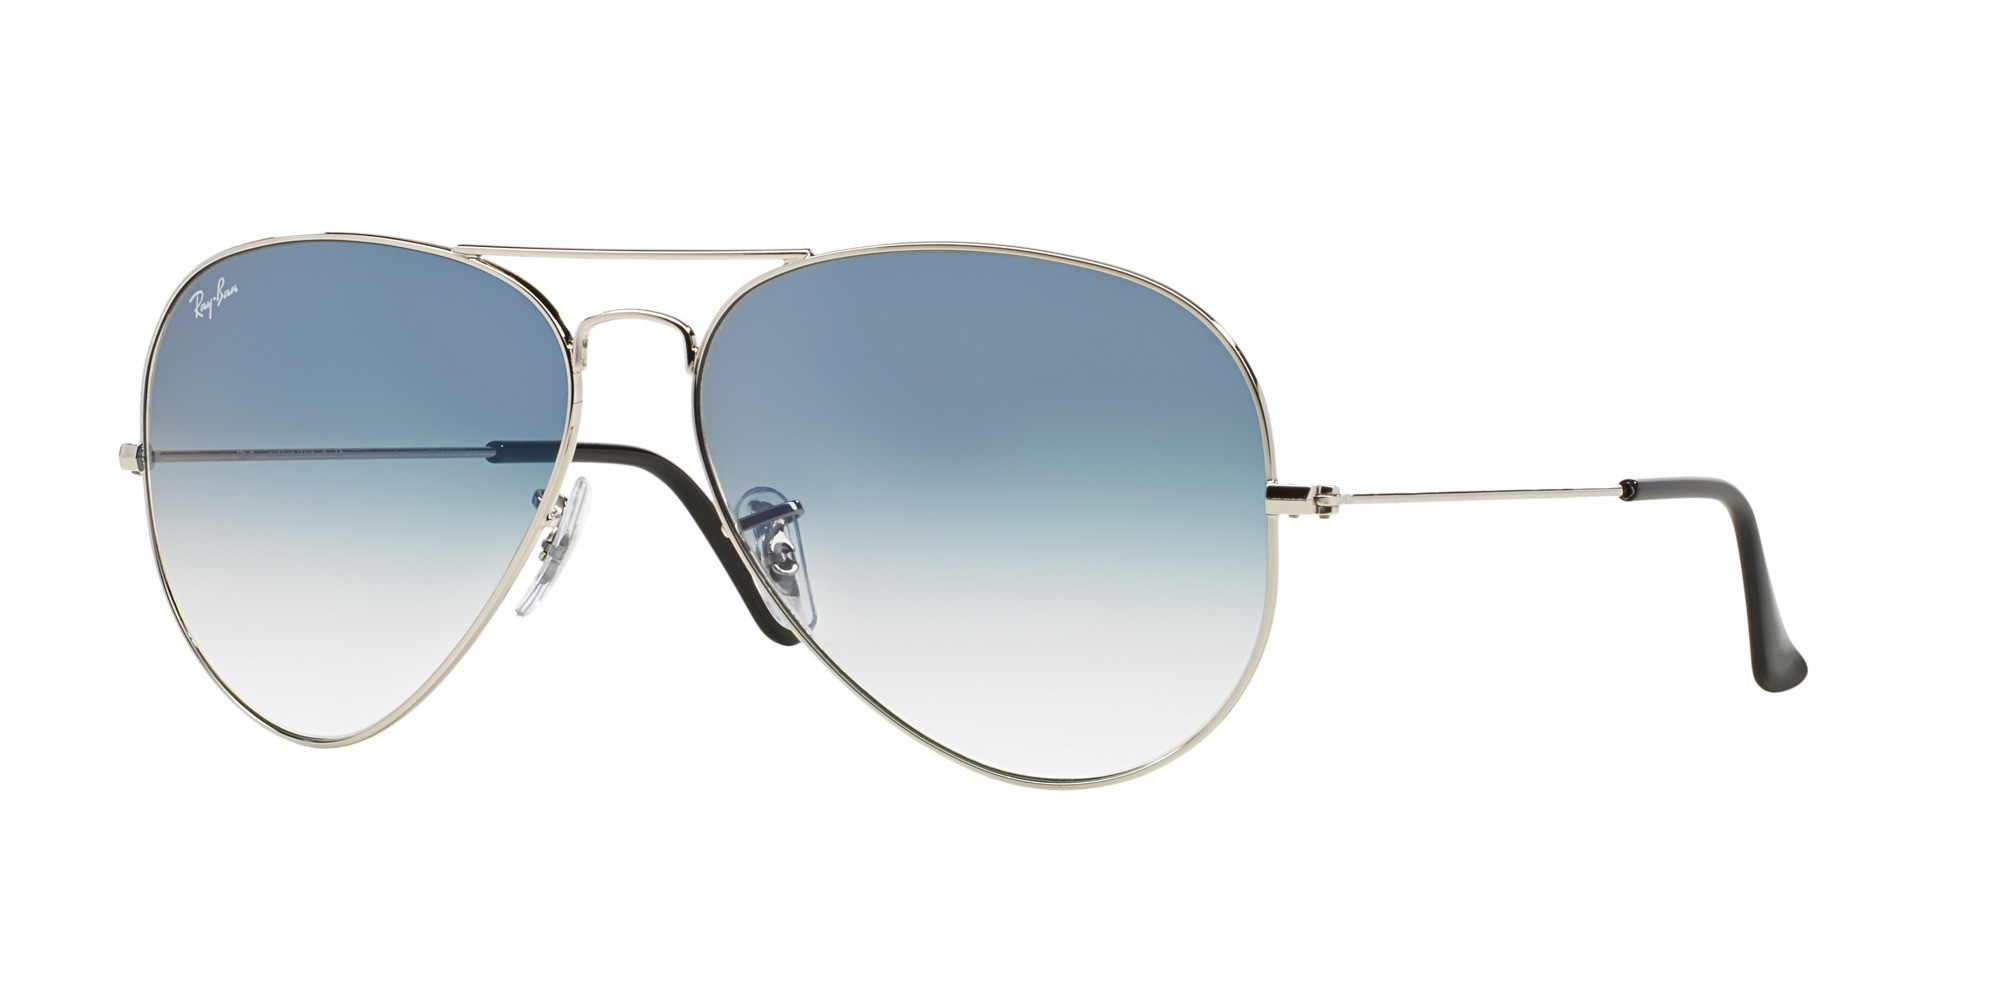 ed06247a0 Ray-Ban Aviator RB 3025 003/3F 55mm 55 Plateadas Aviador